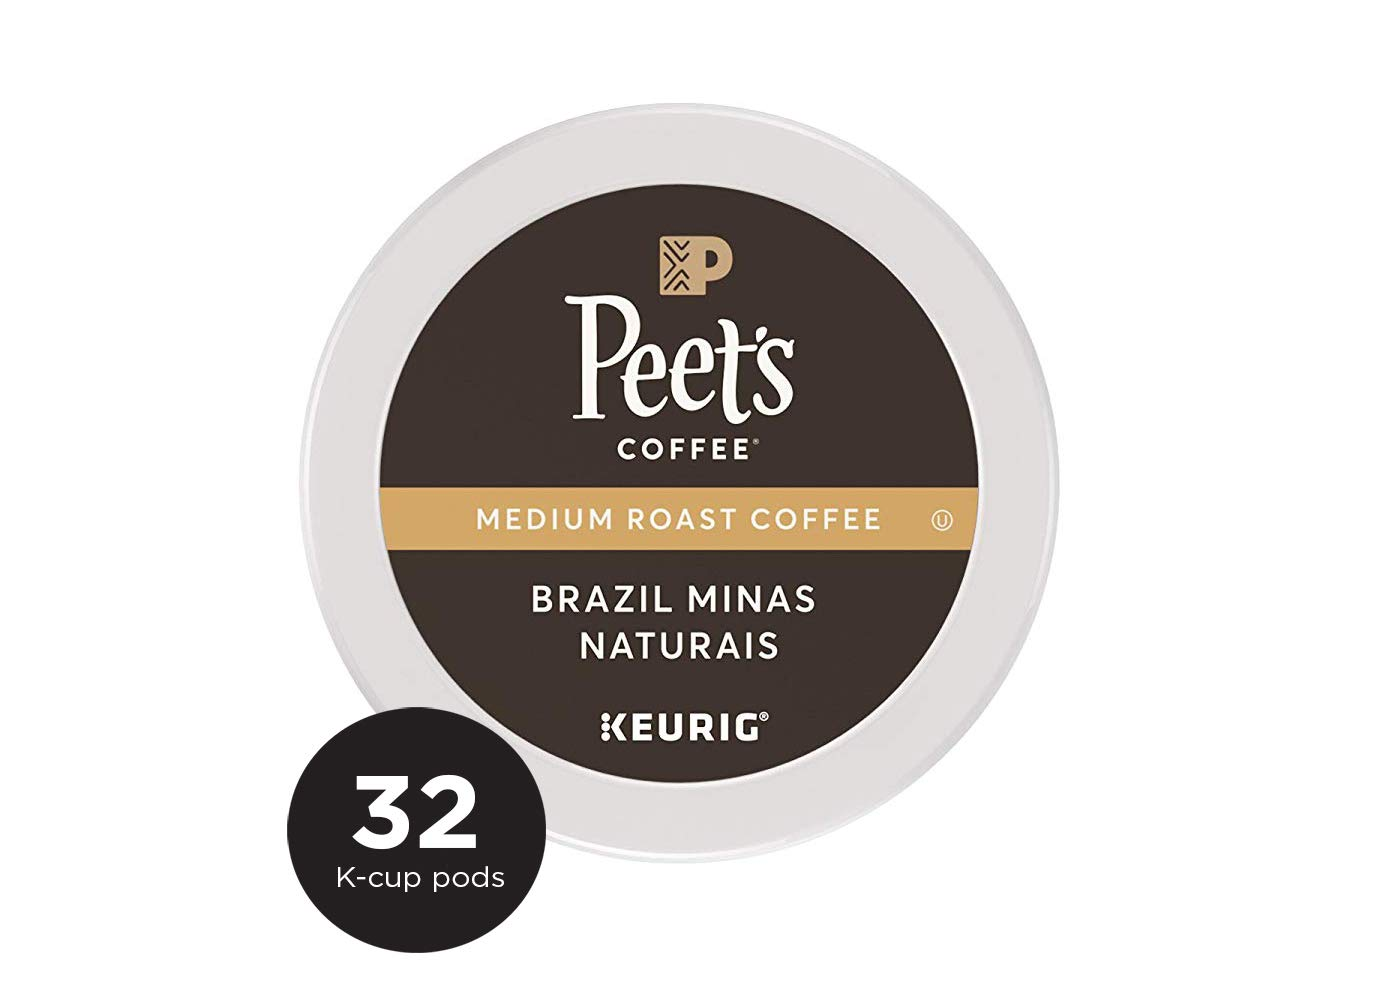 Peets Coffee Brazil Minas Naturais Medium Roast Coffee K-Cup Coffee Pods (32 Count